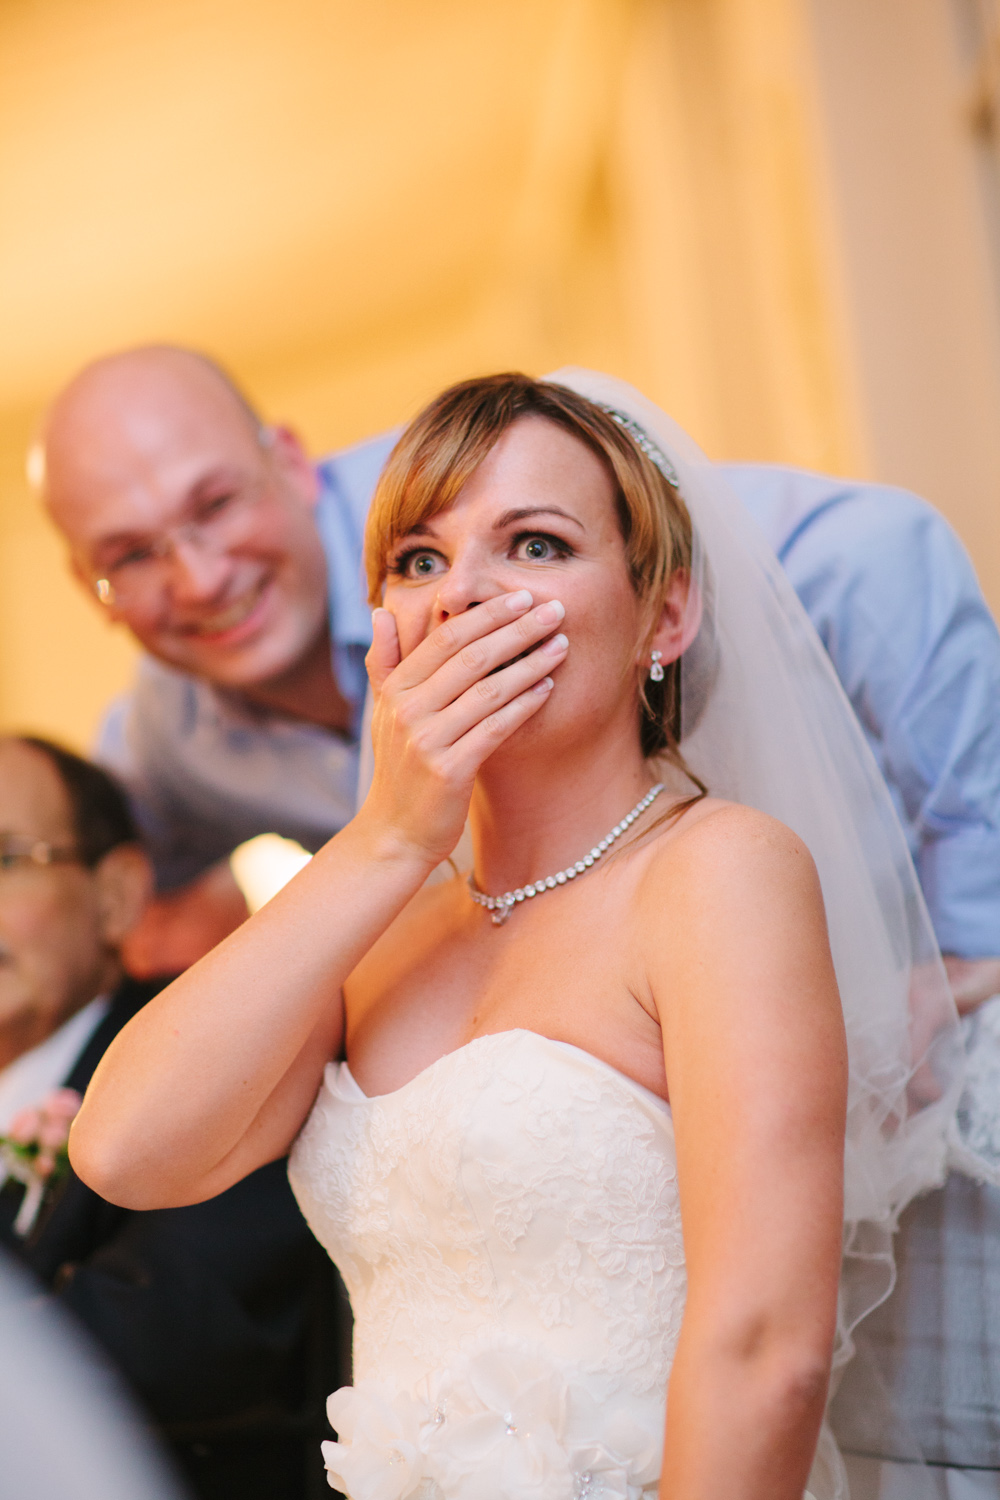 rmw-kate-holor-wedding-by-lee-allen-101-of-121